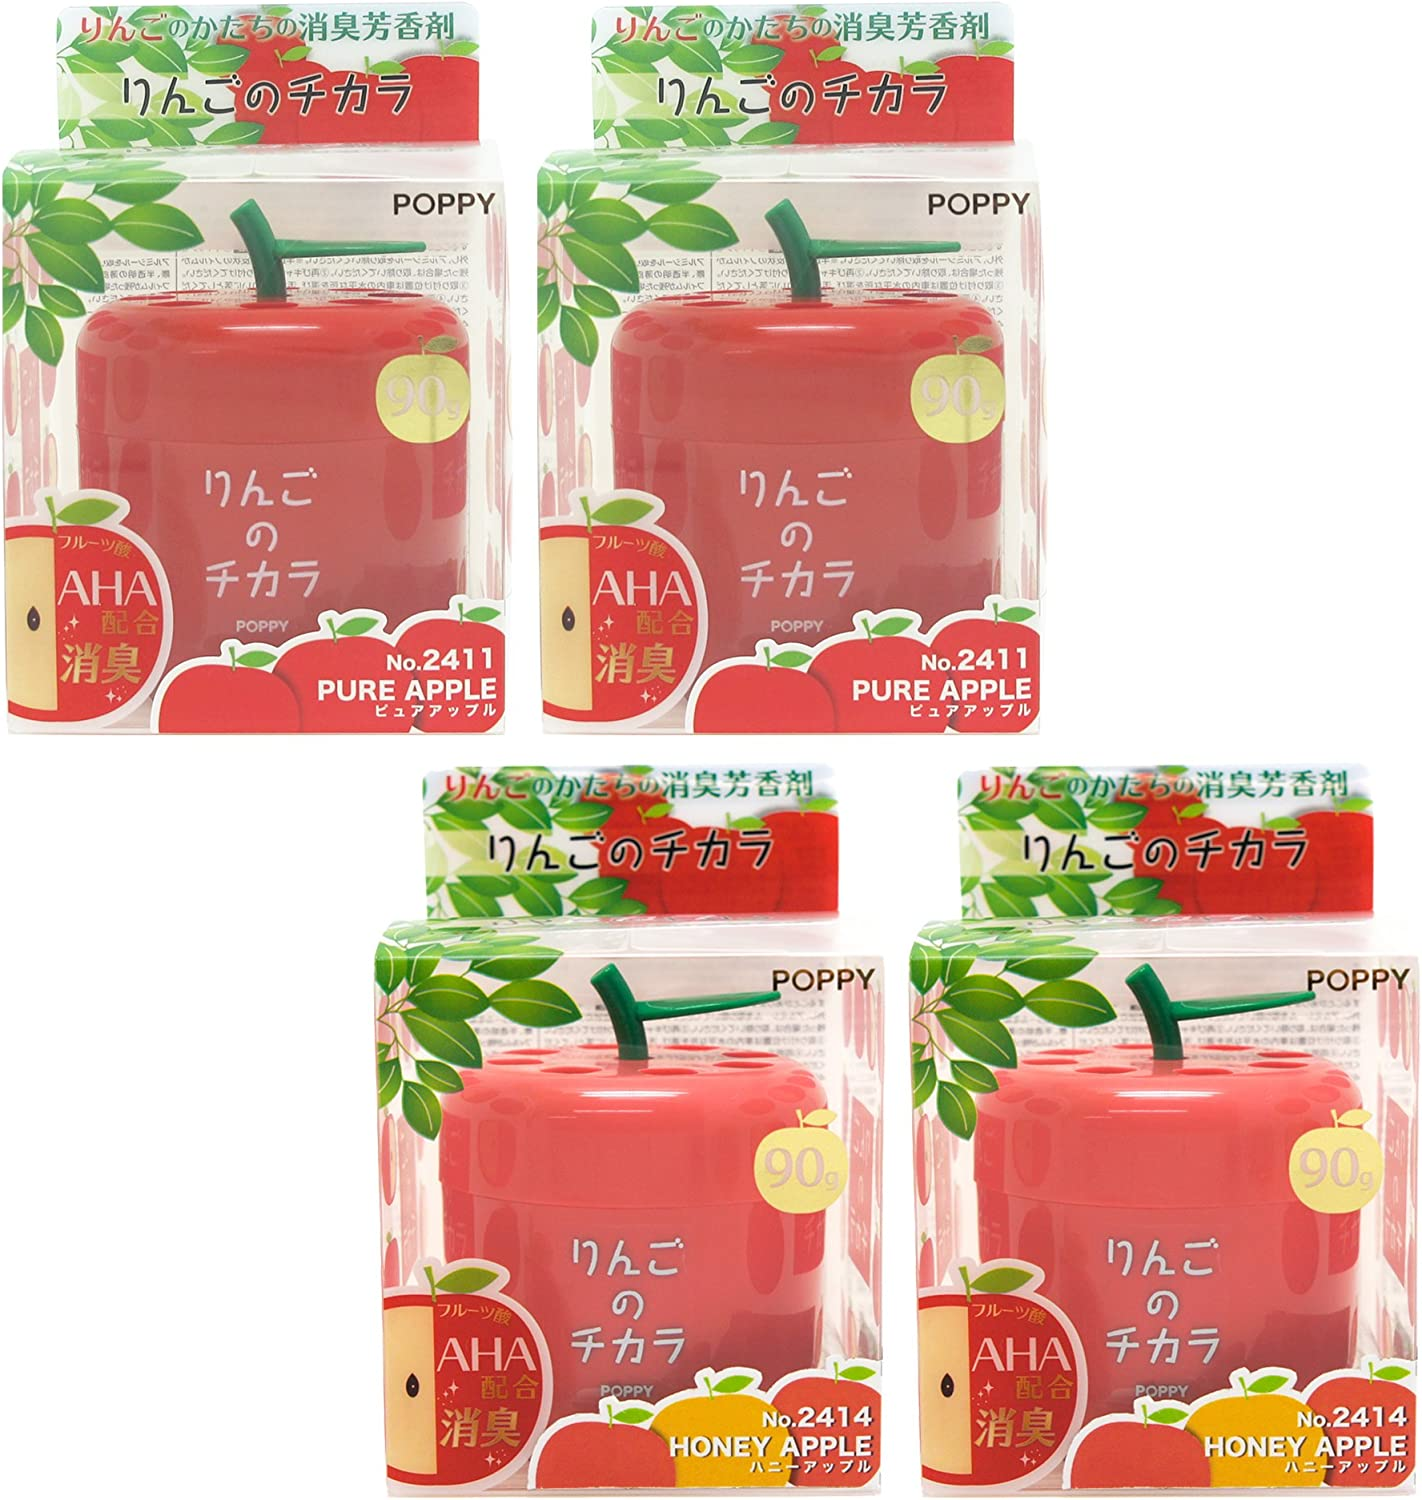 Super Apple car air freshener, Mixed 4 packs, 2X Pure Apple and 2X Honey Apple scent in cute Apple shape container, best JDM Japan Car, Home, Office Air Freshener